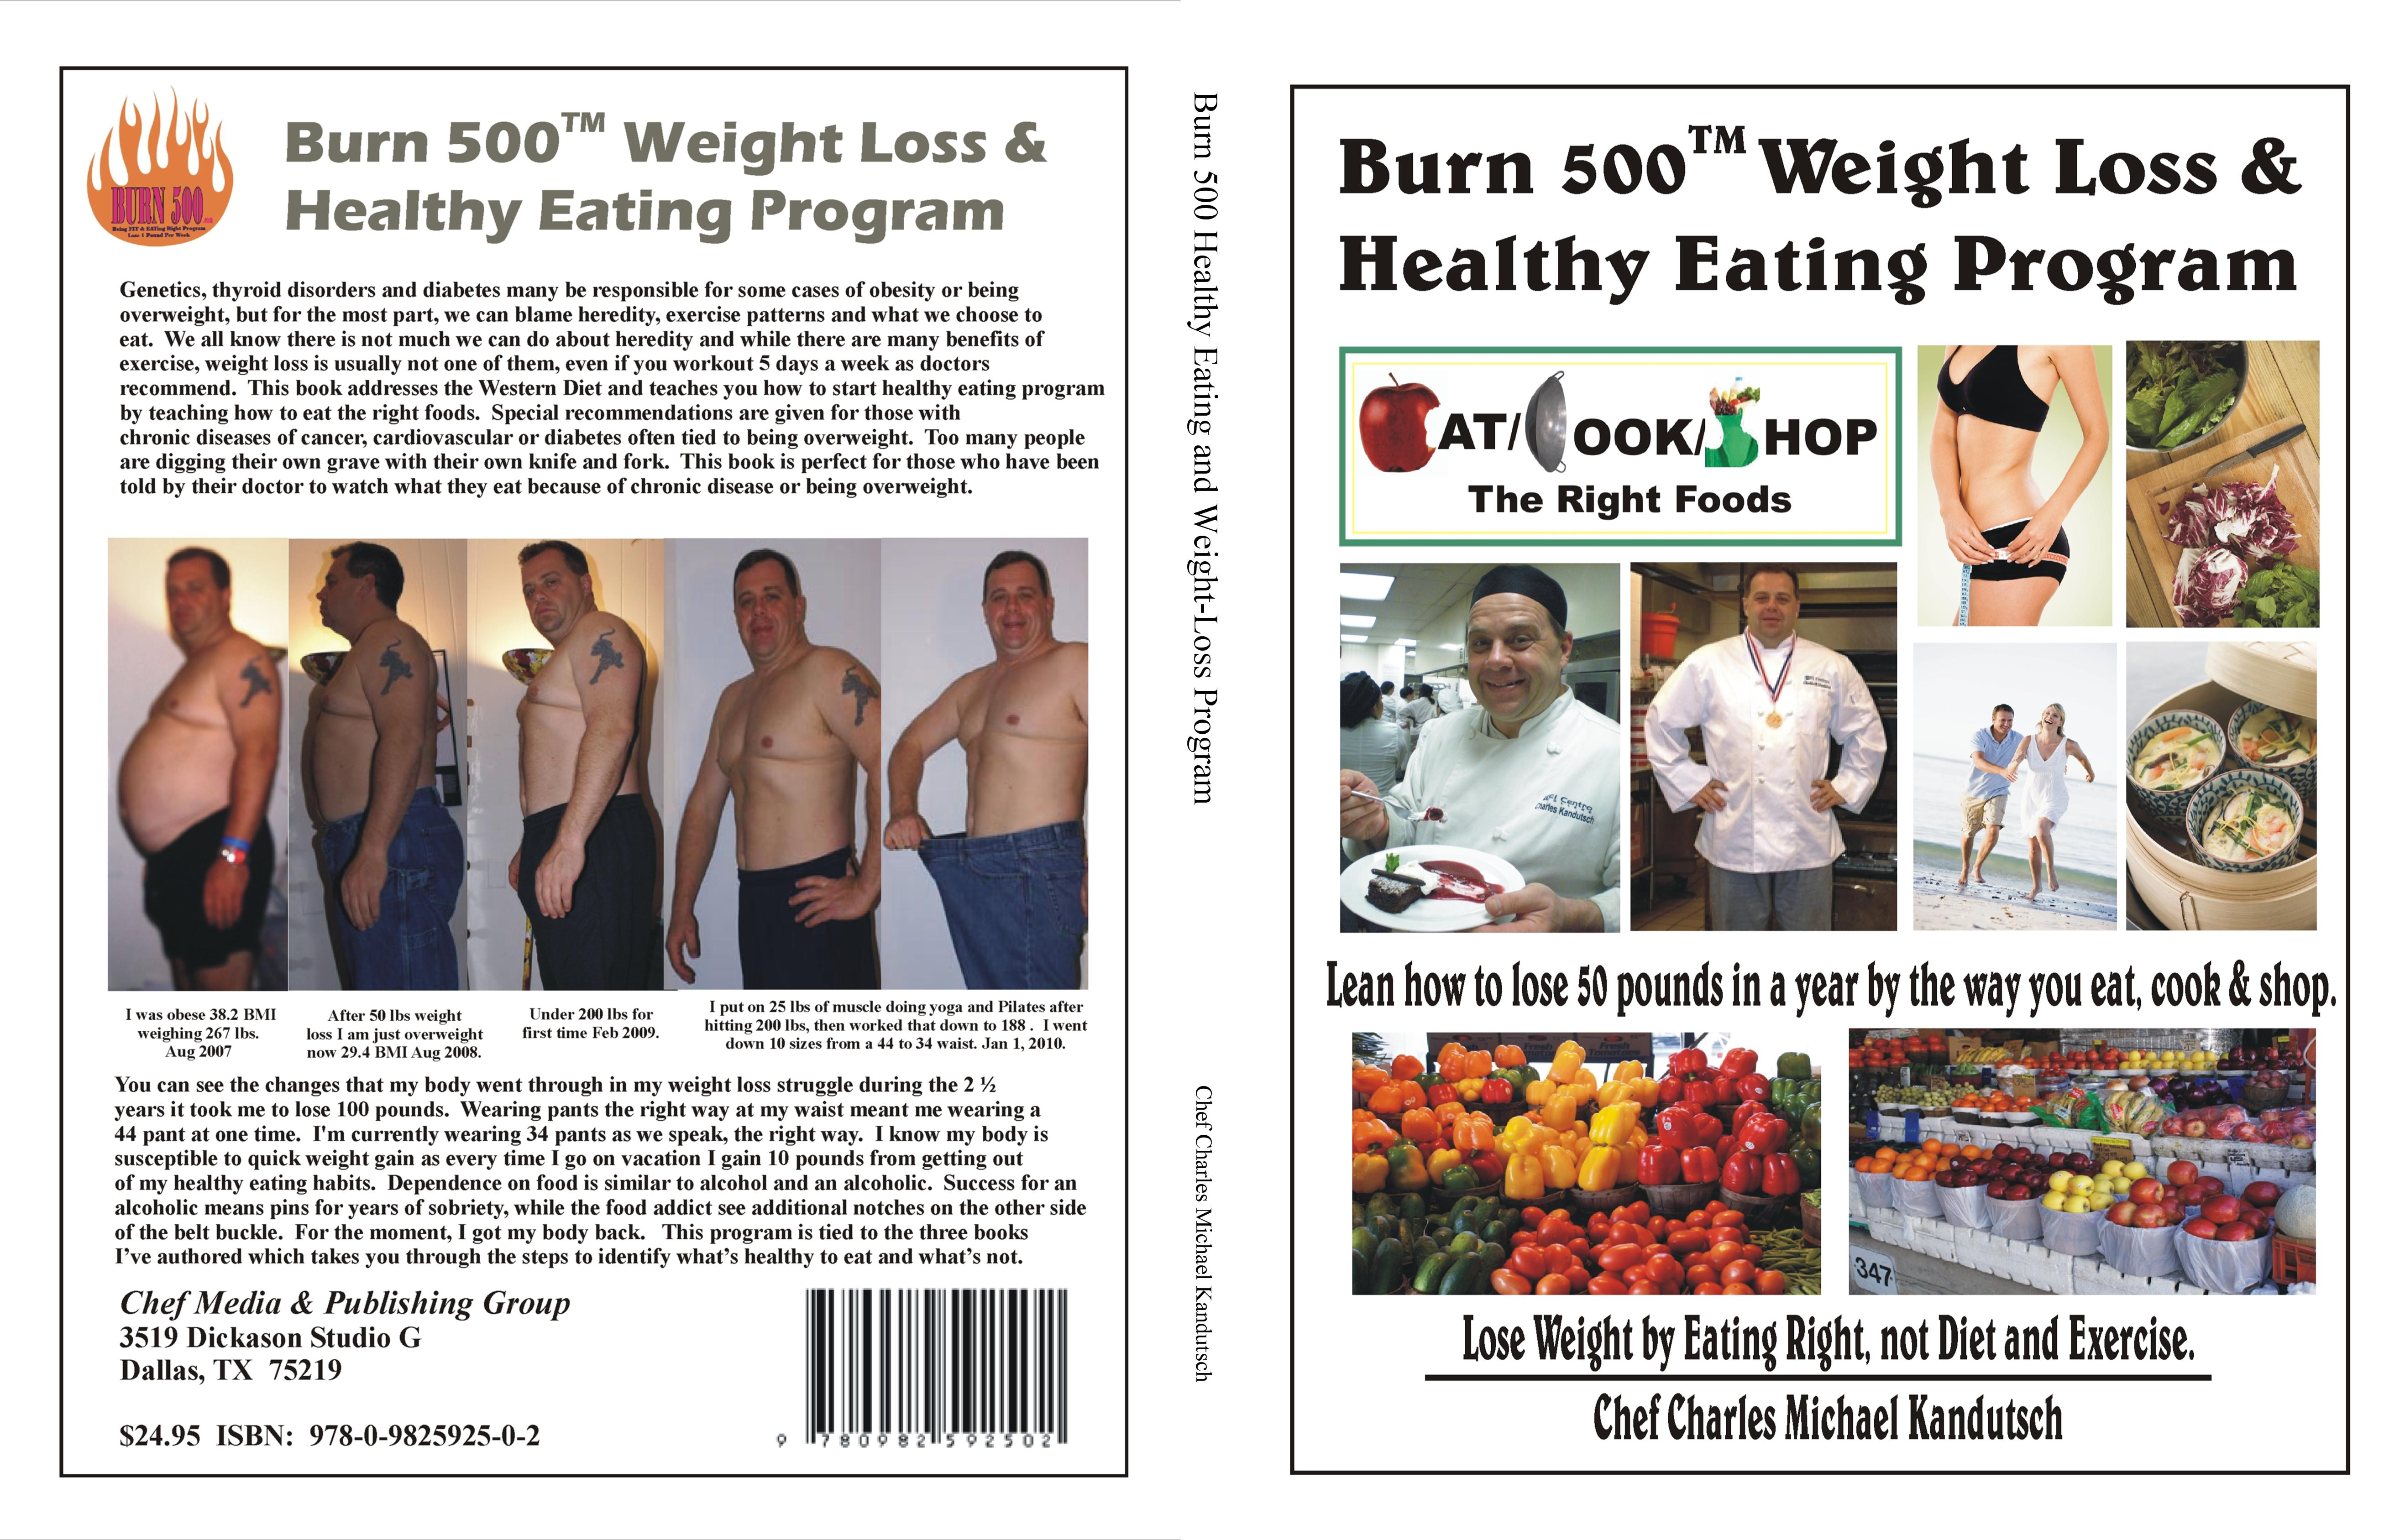 Burn 500 Healthy Eating and Weight-Loss Program cover image